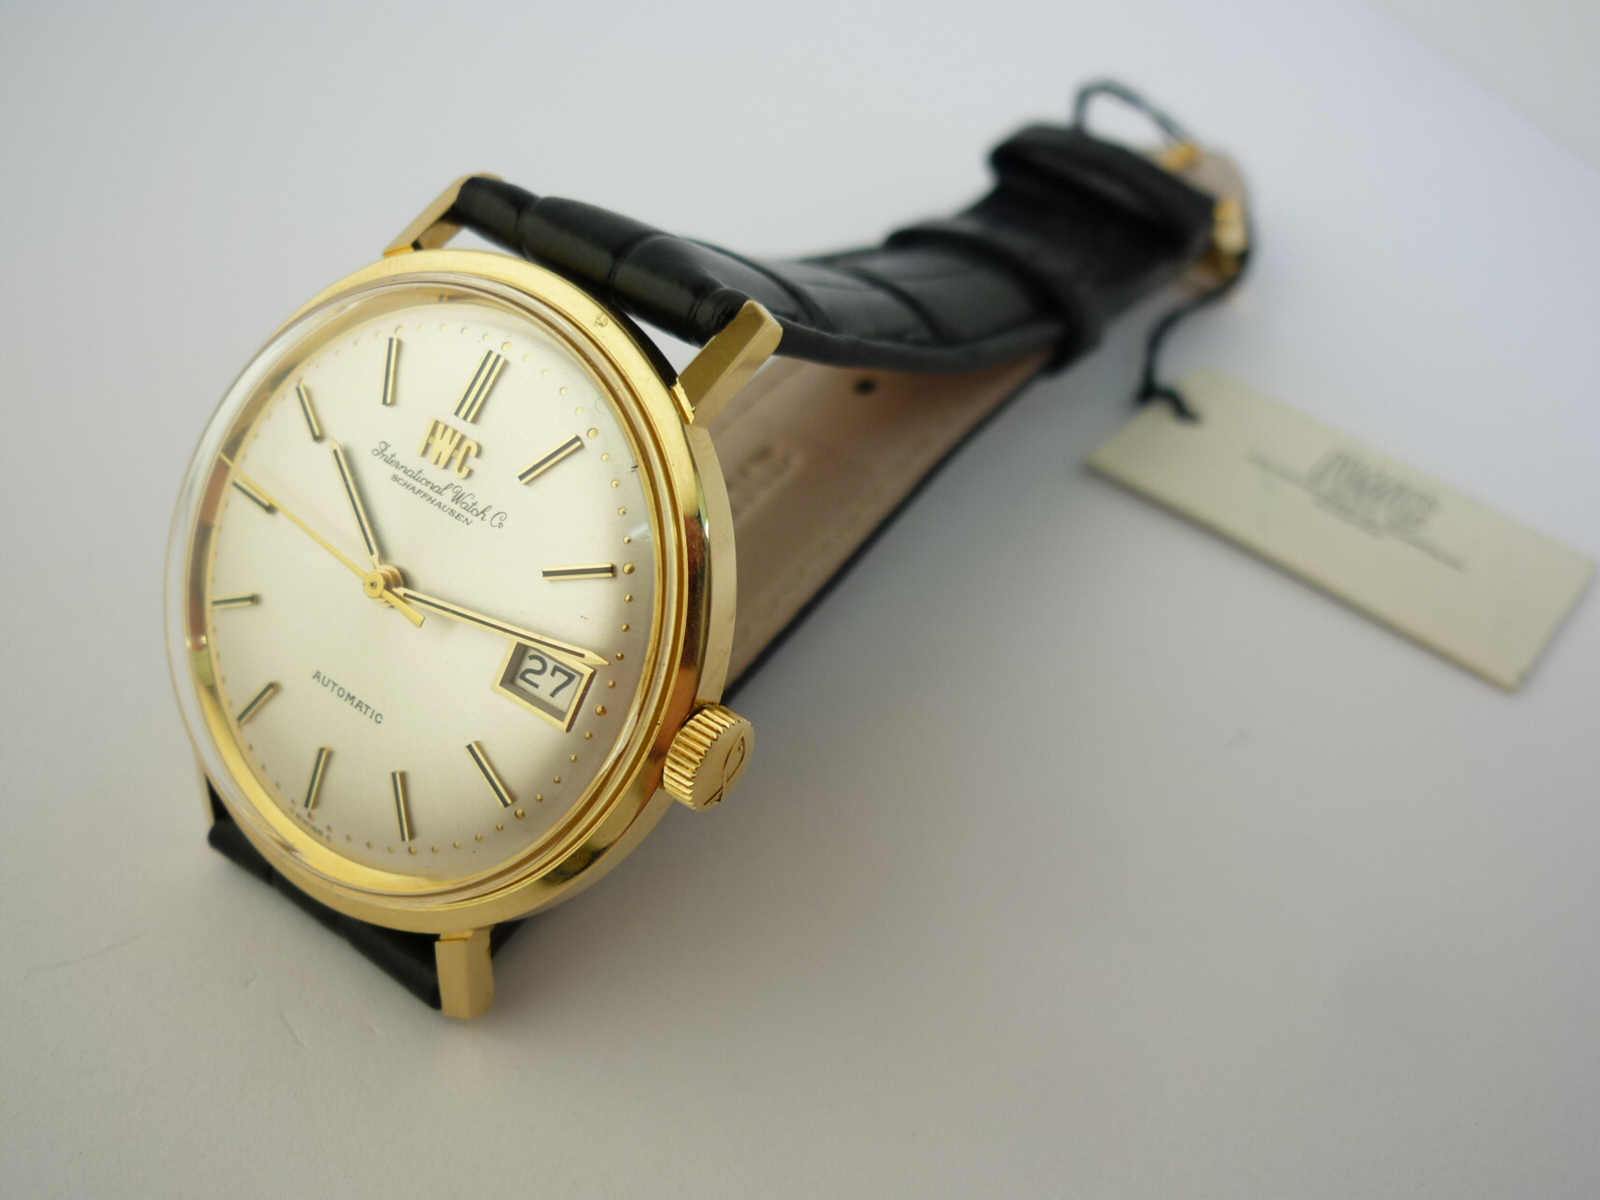 IWC 18ct solid gold watch with papers (1973)